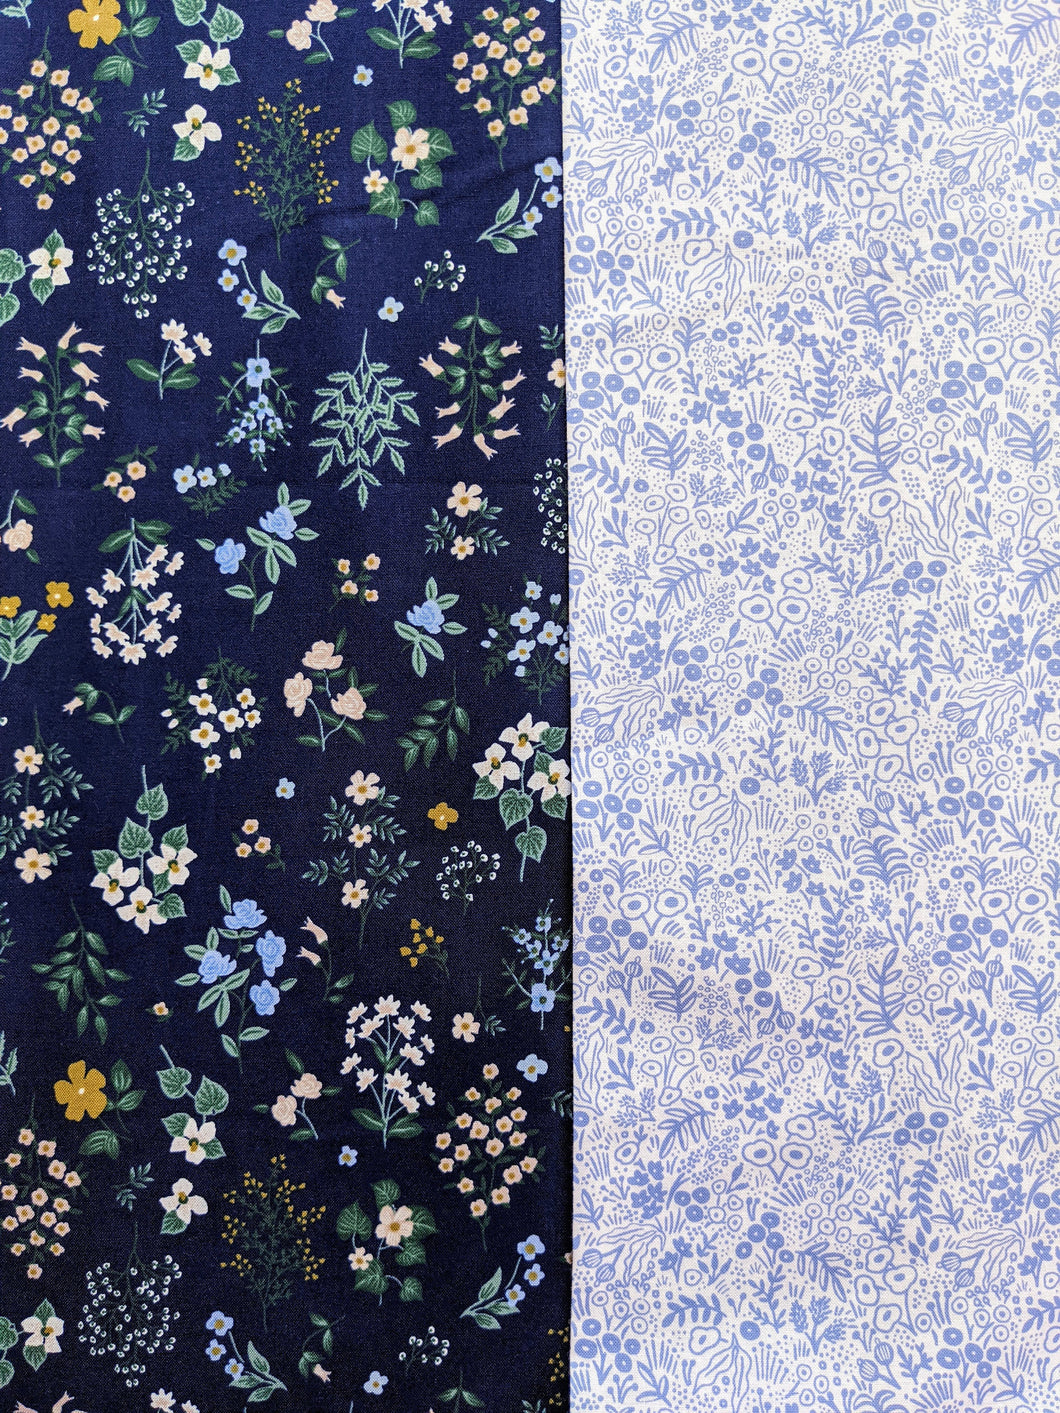 2 Fabric Bundle - Rifle Paper Co., Strawberry Fields/Periwinkle - You Choose the Size